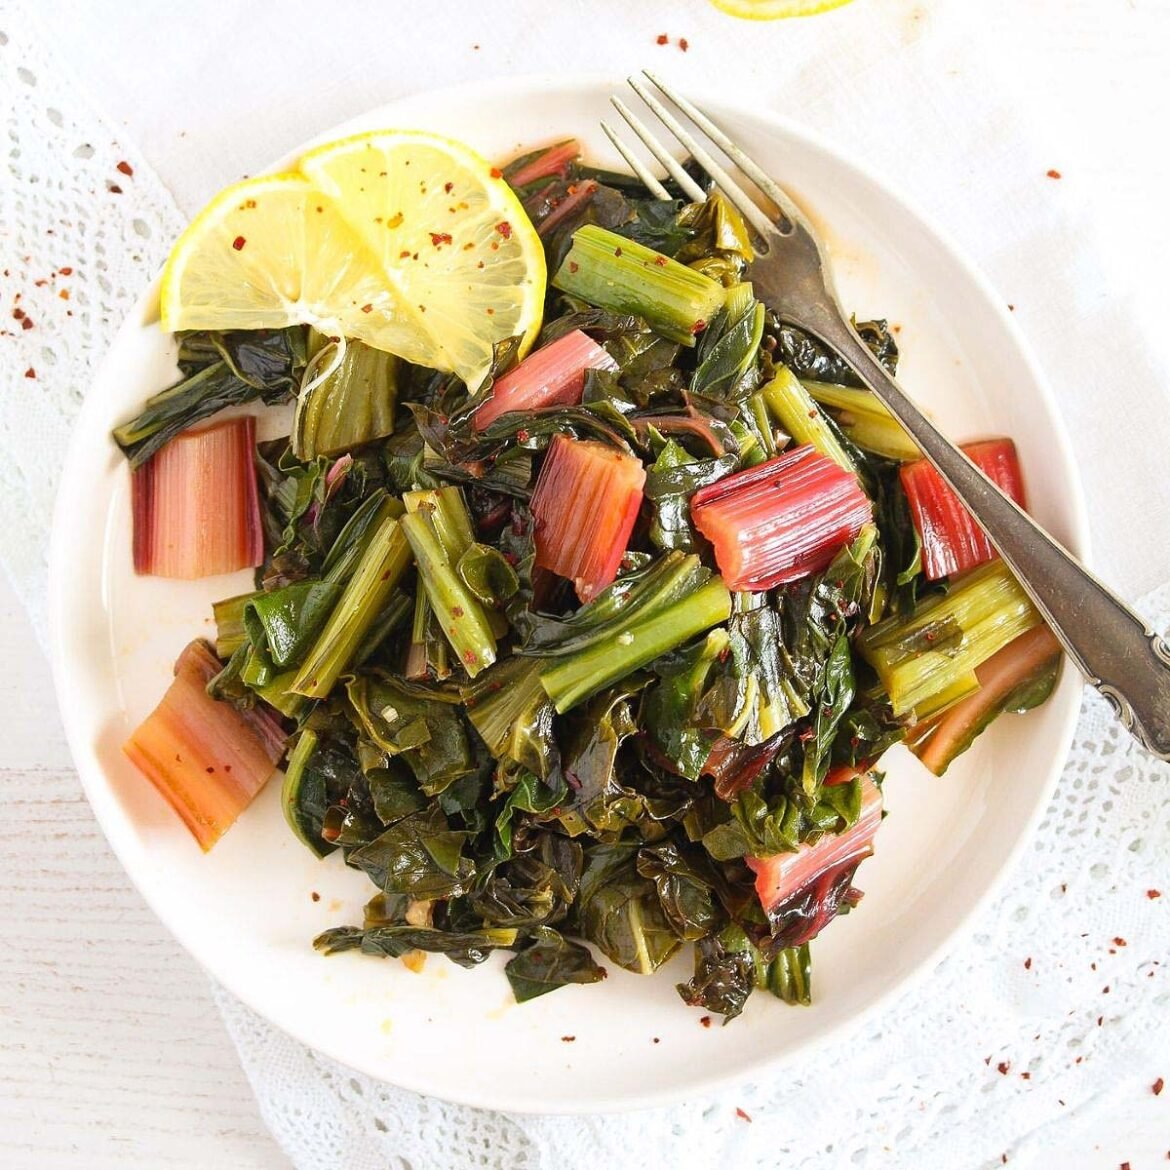 steamed swiss chard served with lemon slices on a white plate